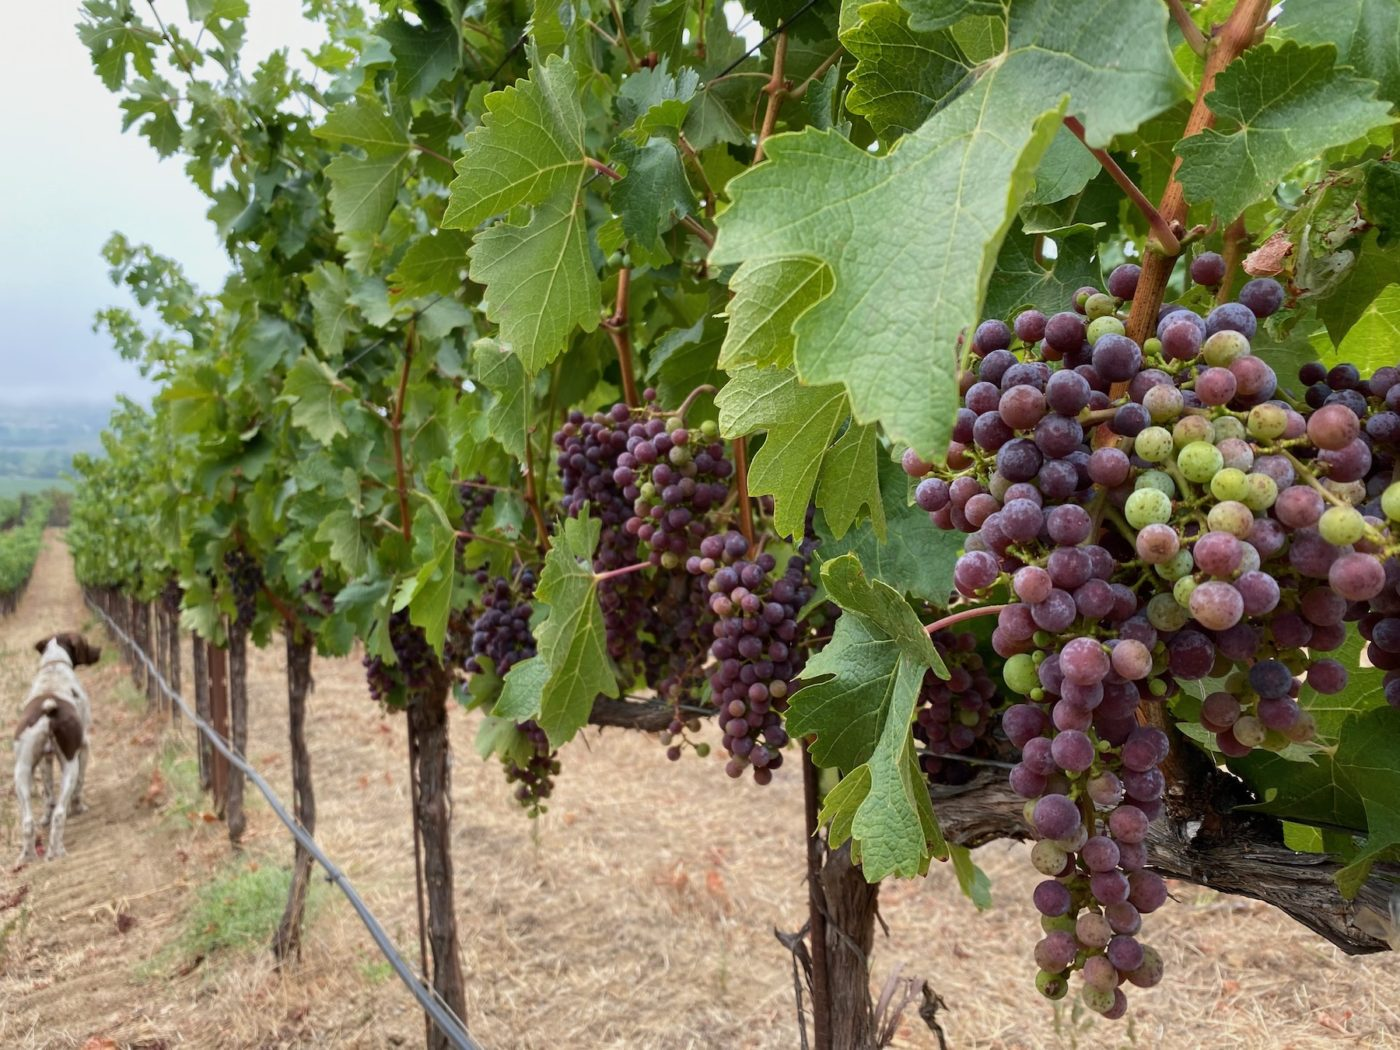 grapes turning color on vine